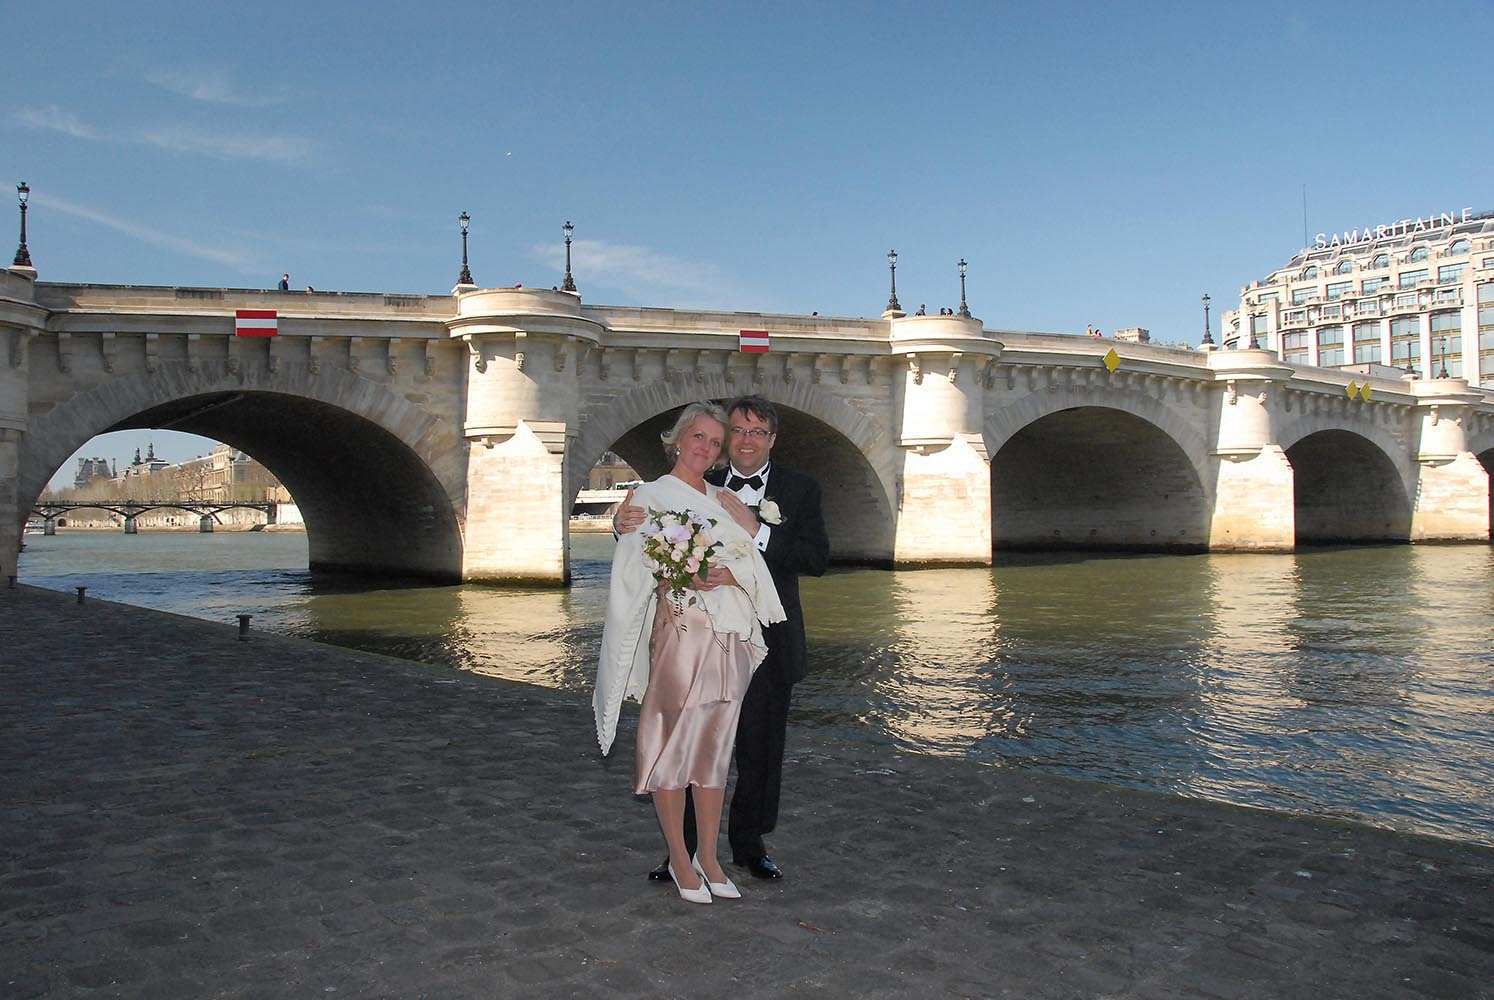 Couple de maries devant le Pont Neuf et la Samaritaine, Paris